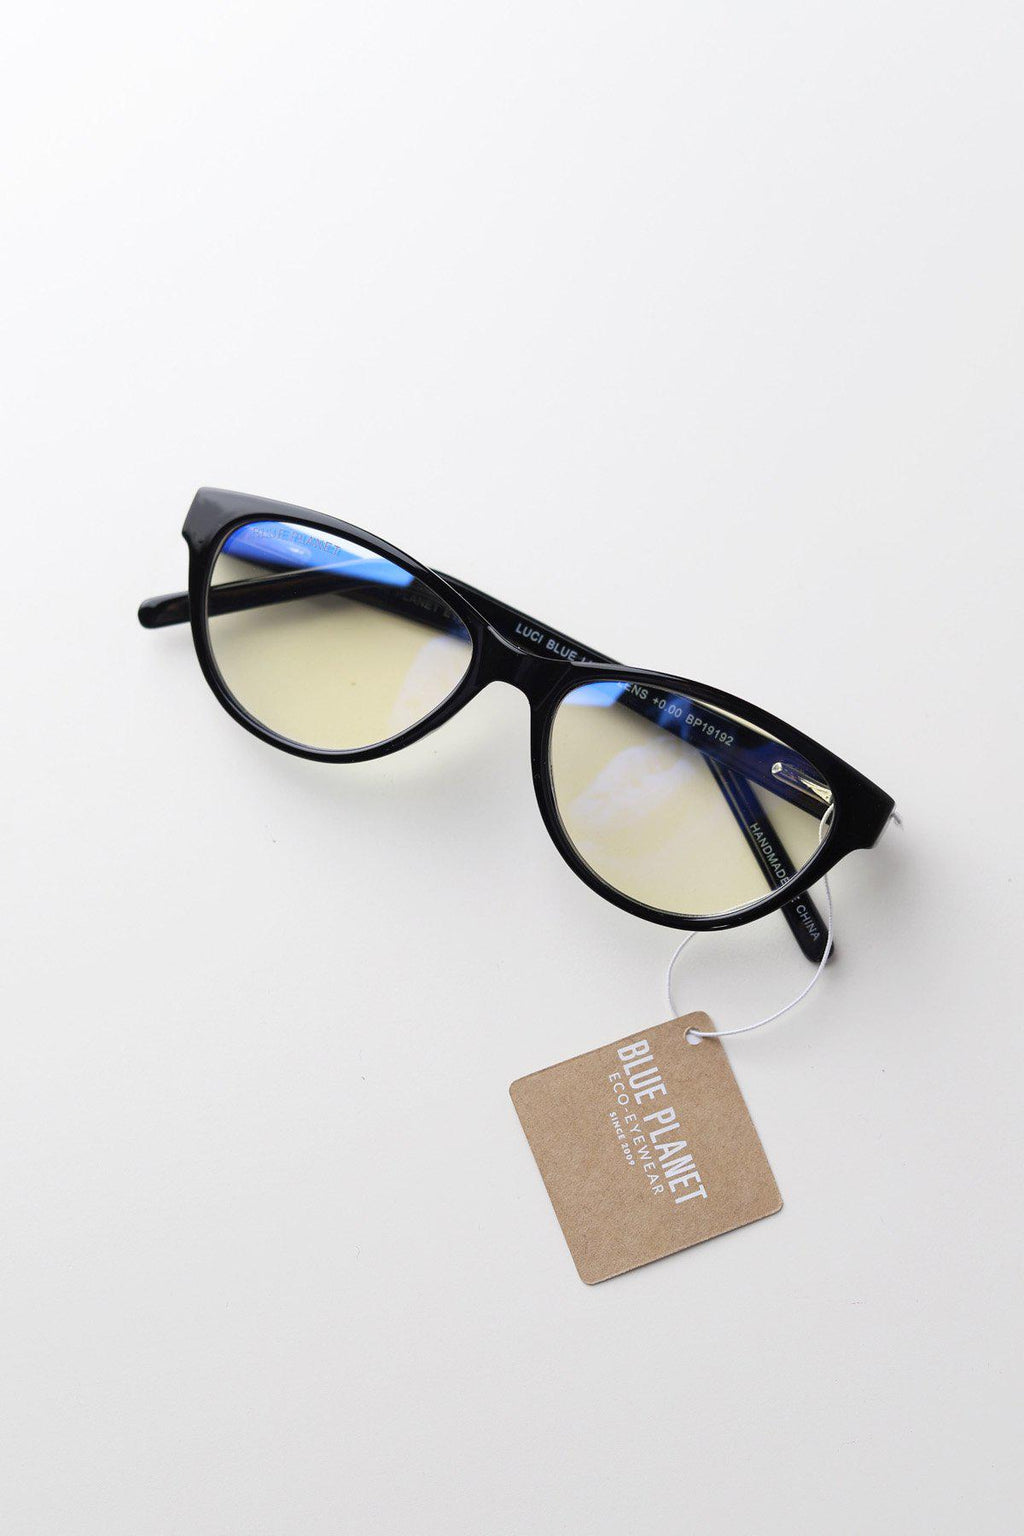 Luci Blue Light Glasses / Black - Gallery 512 Boutique